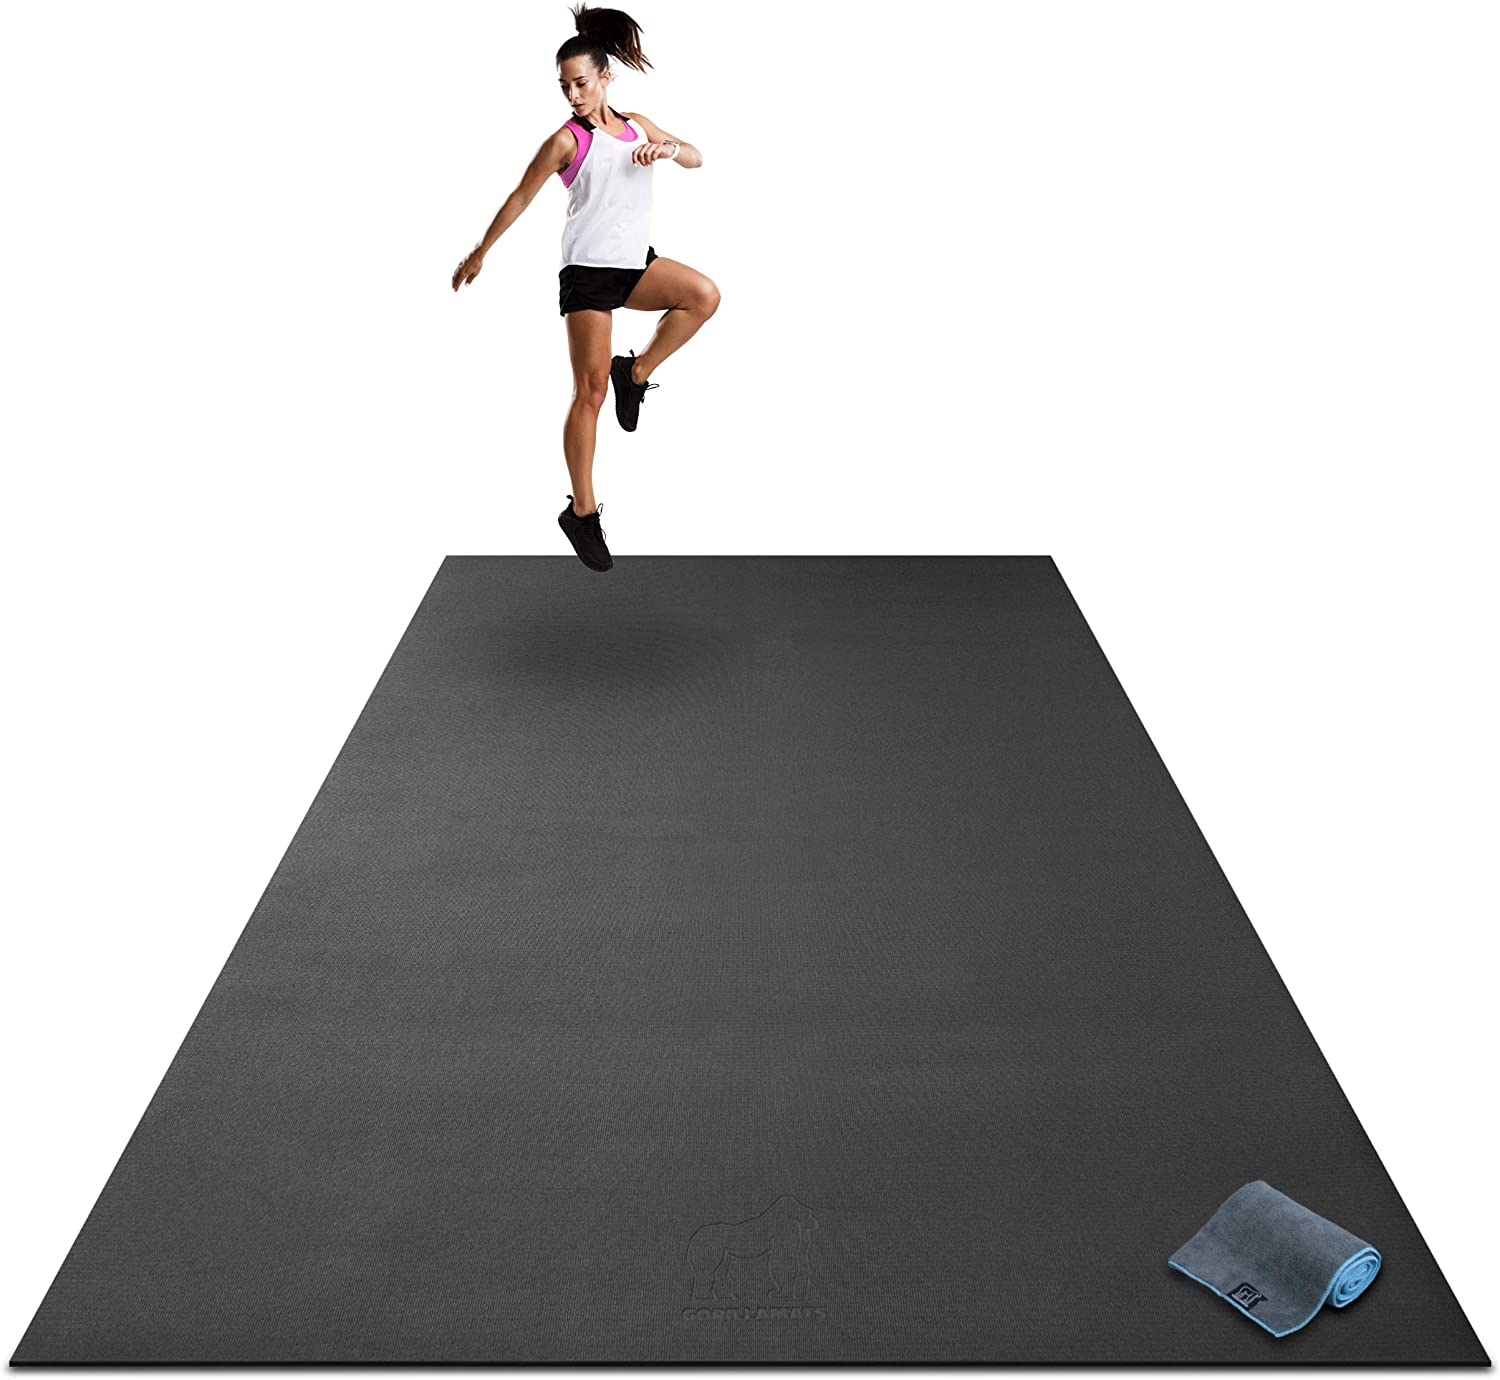 """Premium Extra Large Exercise Mat - 9' x 6' x 1/4"""" Ultra Durable, Non-Slip, Workout Mats for Home Gym Flooring - Plyo, MMA, Cardio Mat - Use with or Without Shoes (108"""" Long x 72"""" Wide x 6mm Thick)"""